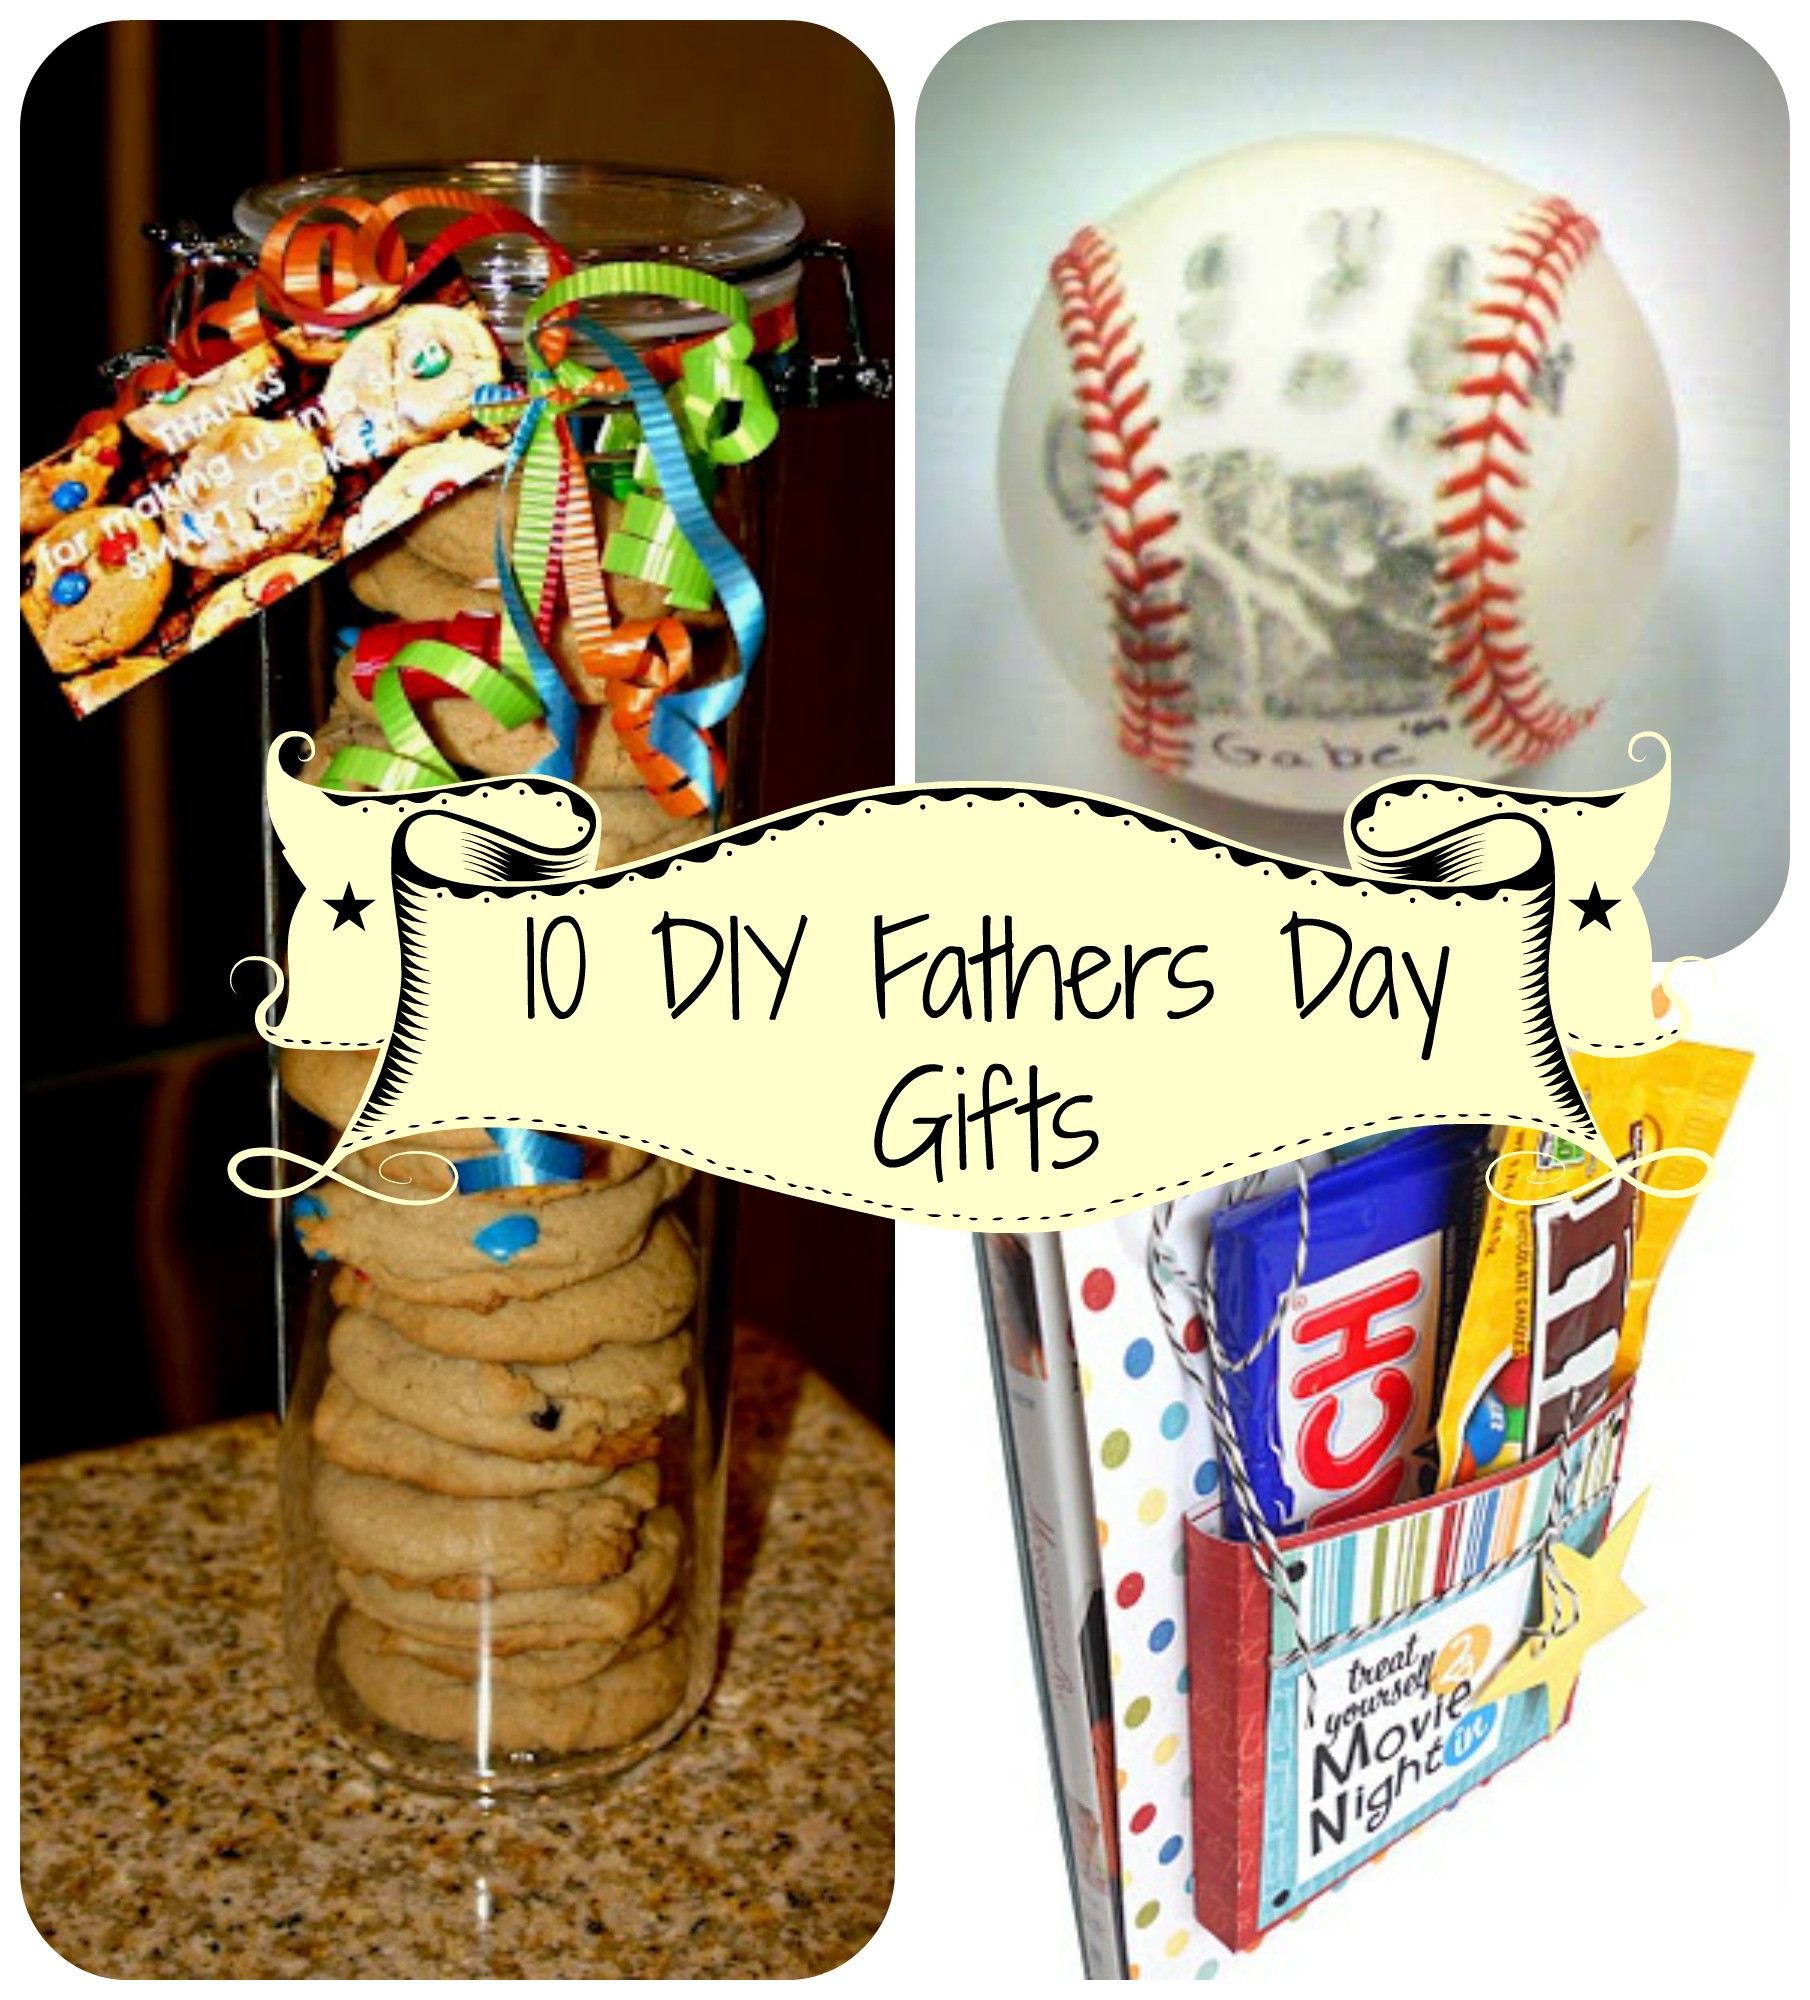 Best ideas about Fathers Day Gift DIY . Save or Pin 10 Easy DIY Fathers Day Gifts Now.